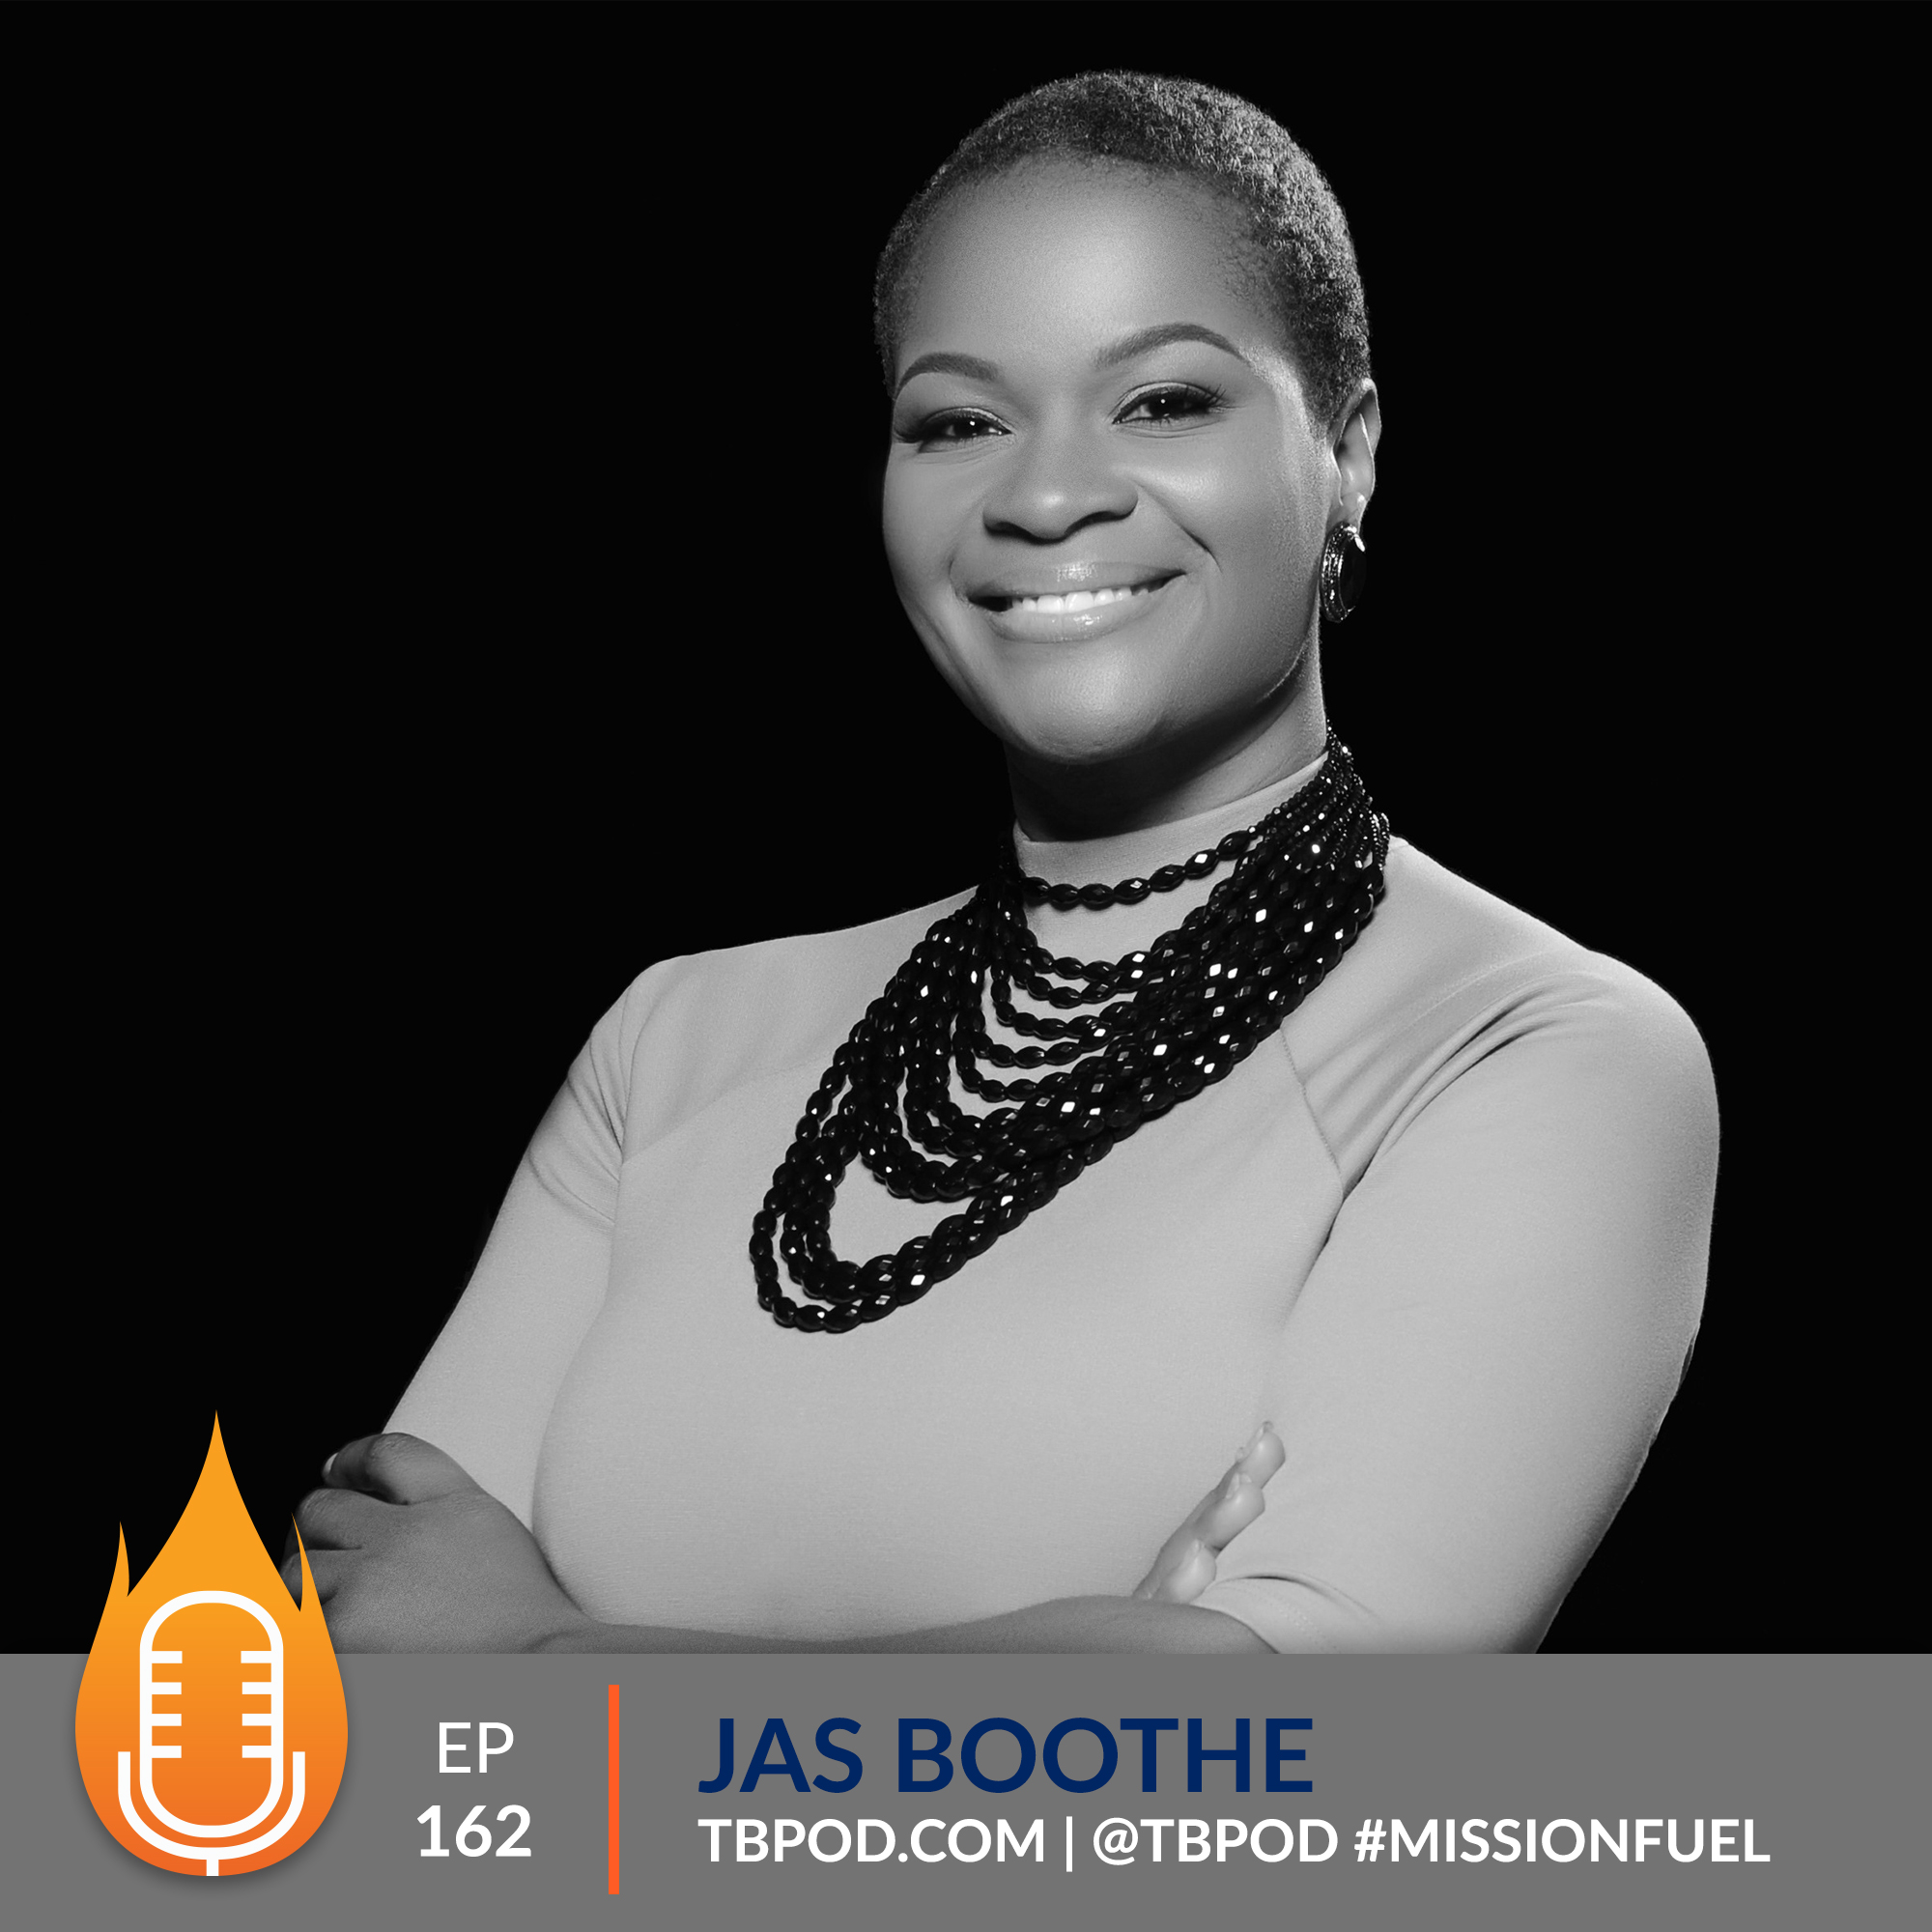 Jas Boothe